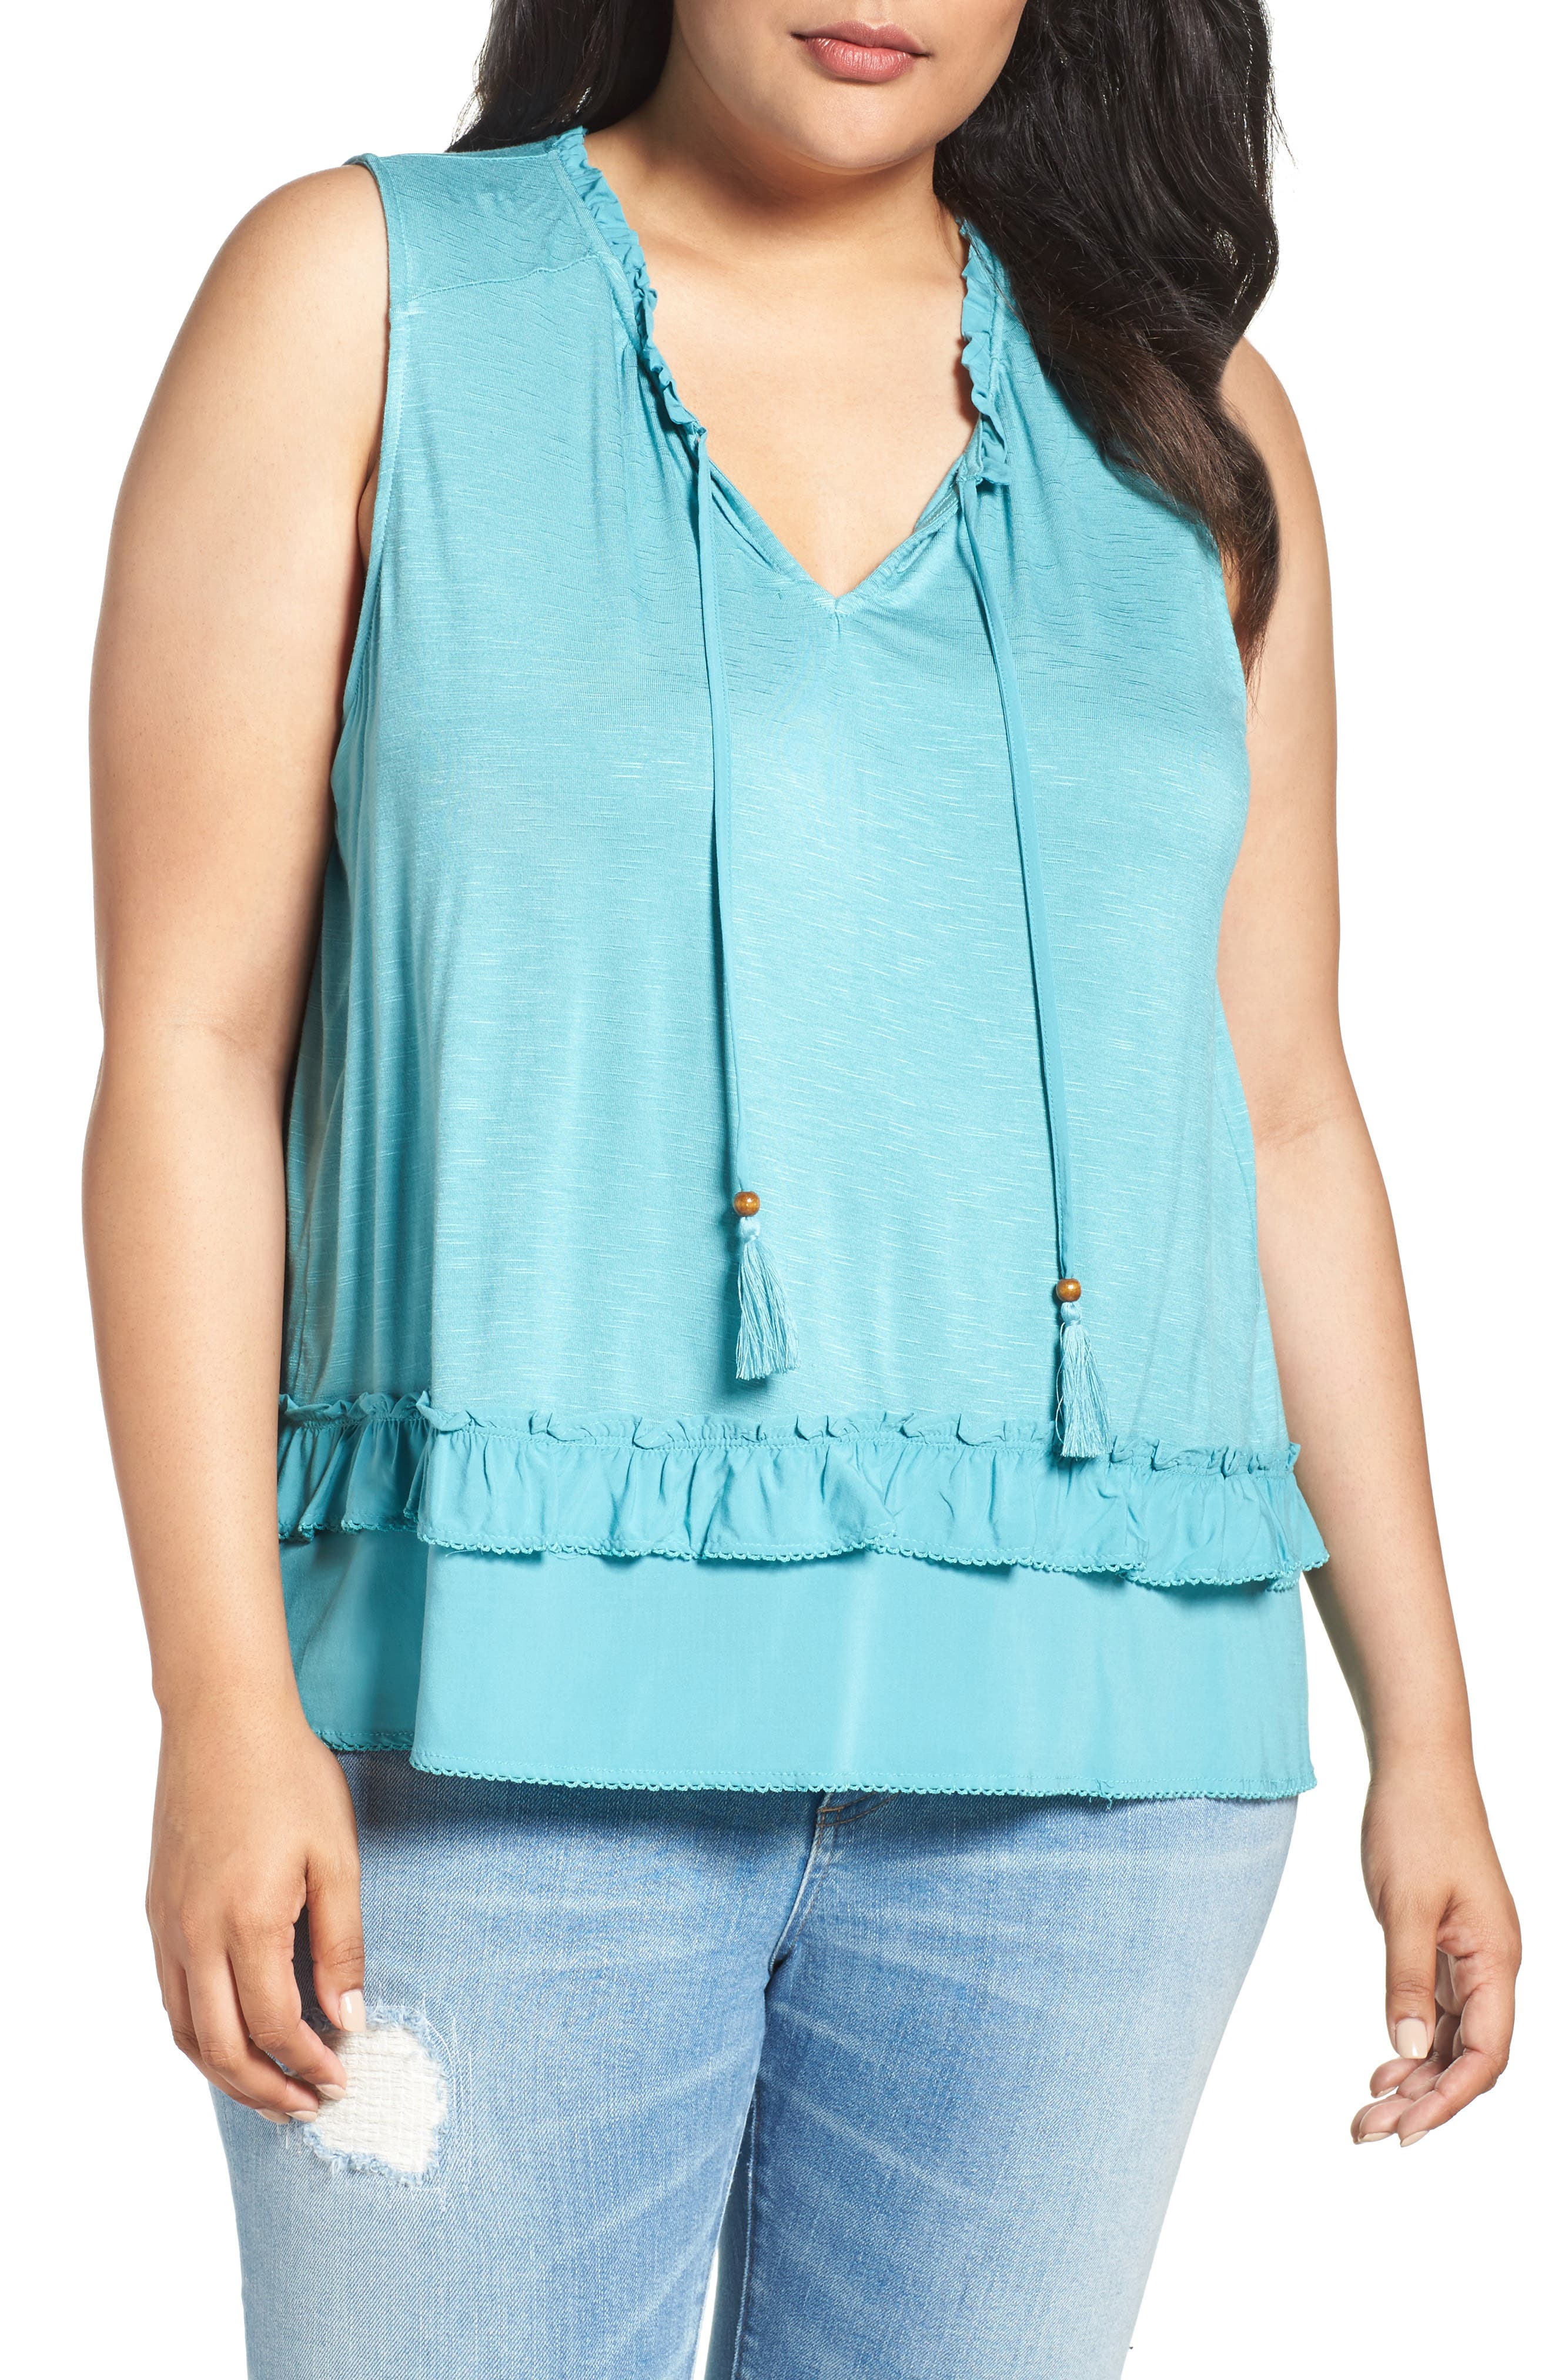 Alternate Image 1 Selected - Democracy Ruffle Trim Tie Neck Top (Plus Size)